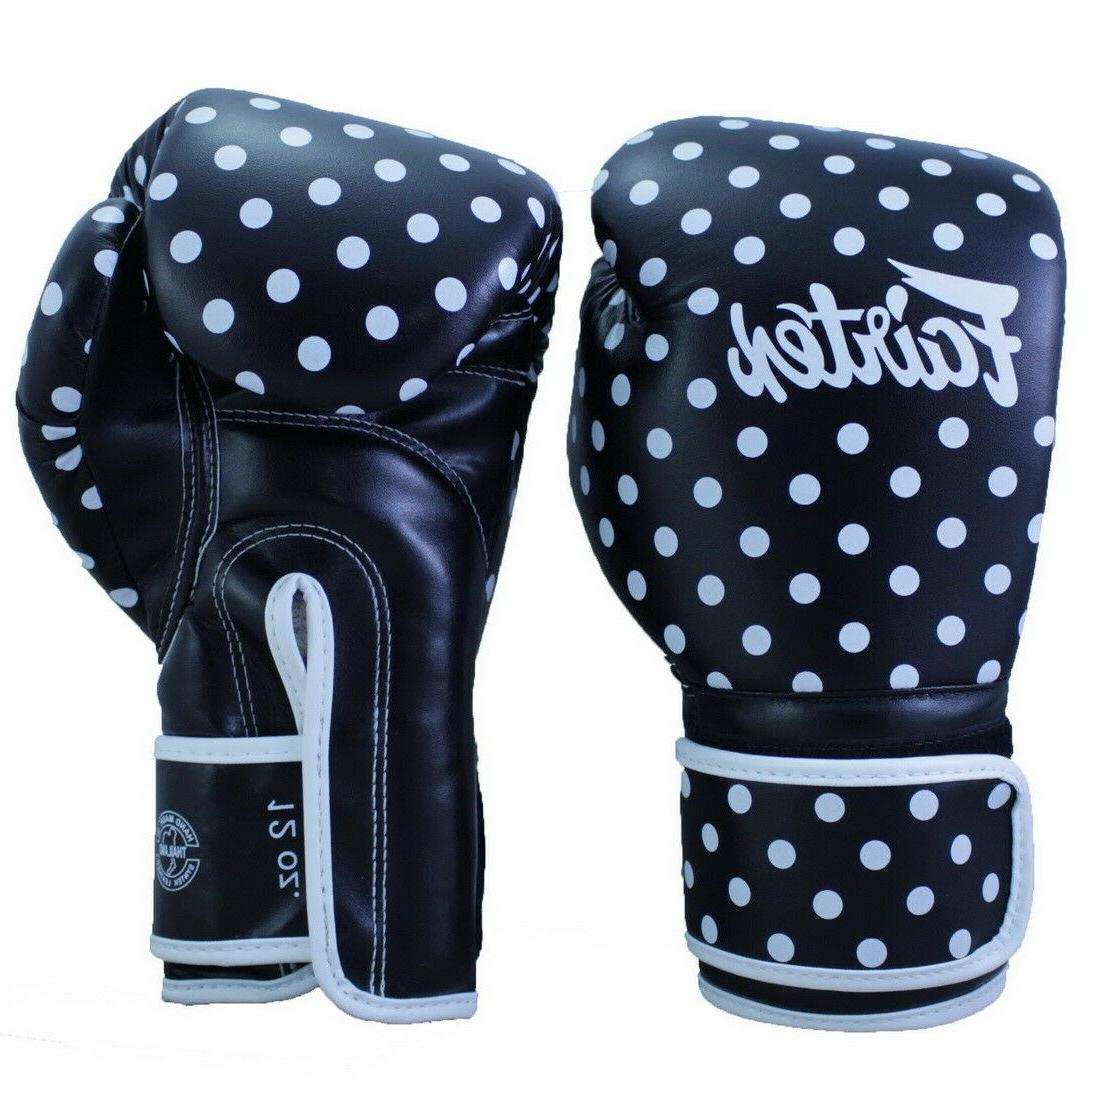 muay thai kick boxing gloves bgv14 black